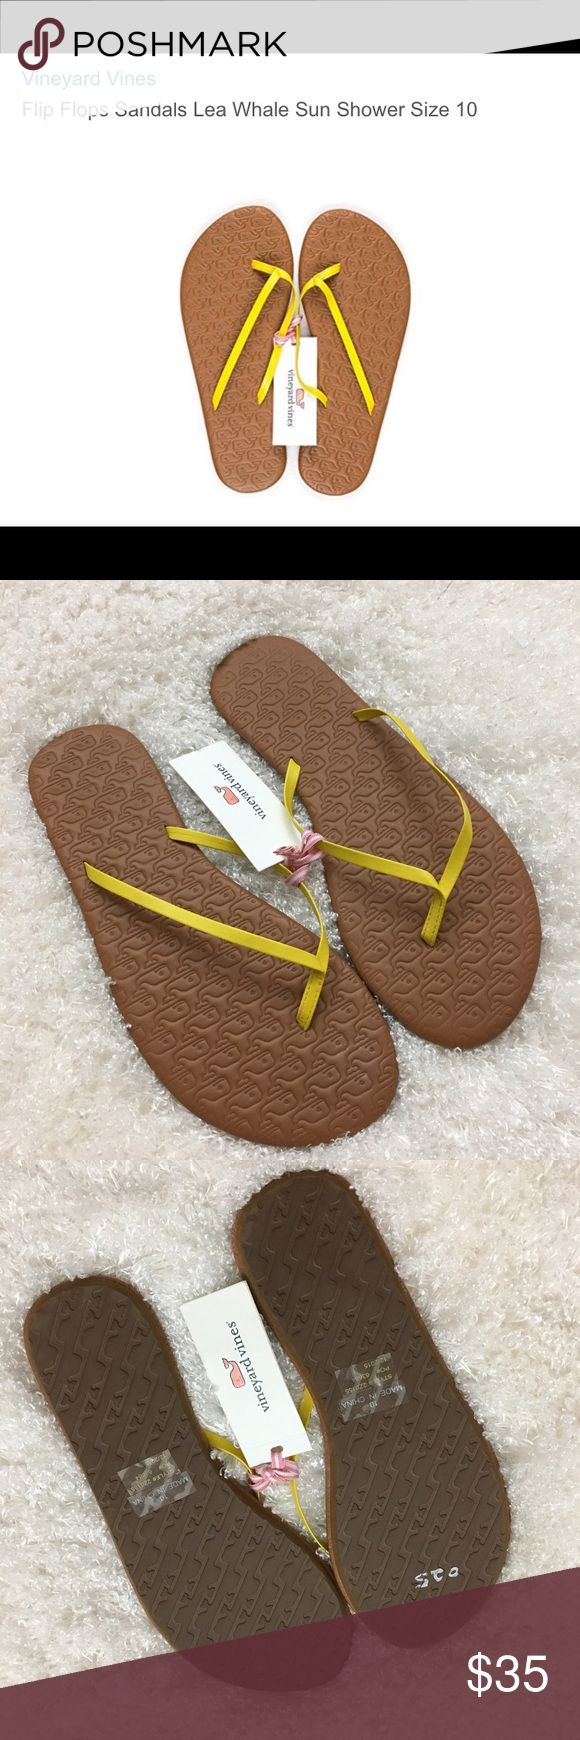 NEW Vineyard Vines Women's Flip Flops Lea Whale 10 New with tag! Vineyard Vines women's flip flop with embossed lea whale. Style: 2Z0155-765-10  Size 10  Please see all pictures for details or ask questions prior to purchase to avoid returns.  Check out my store for more items on sale! Vineyard Vines Shoes Slippers